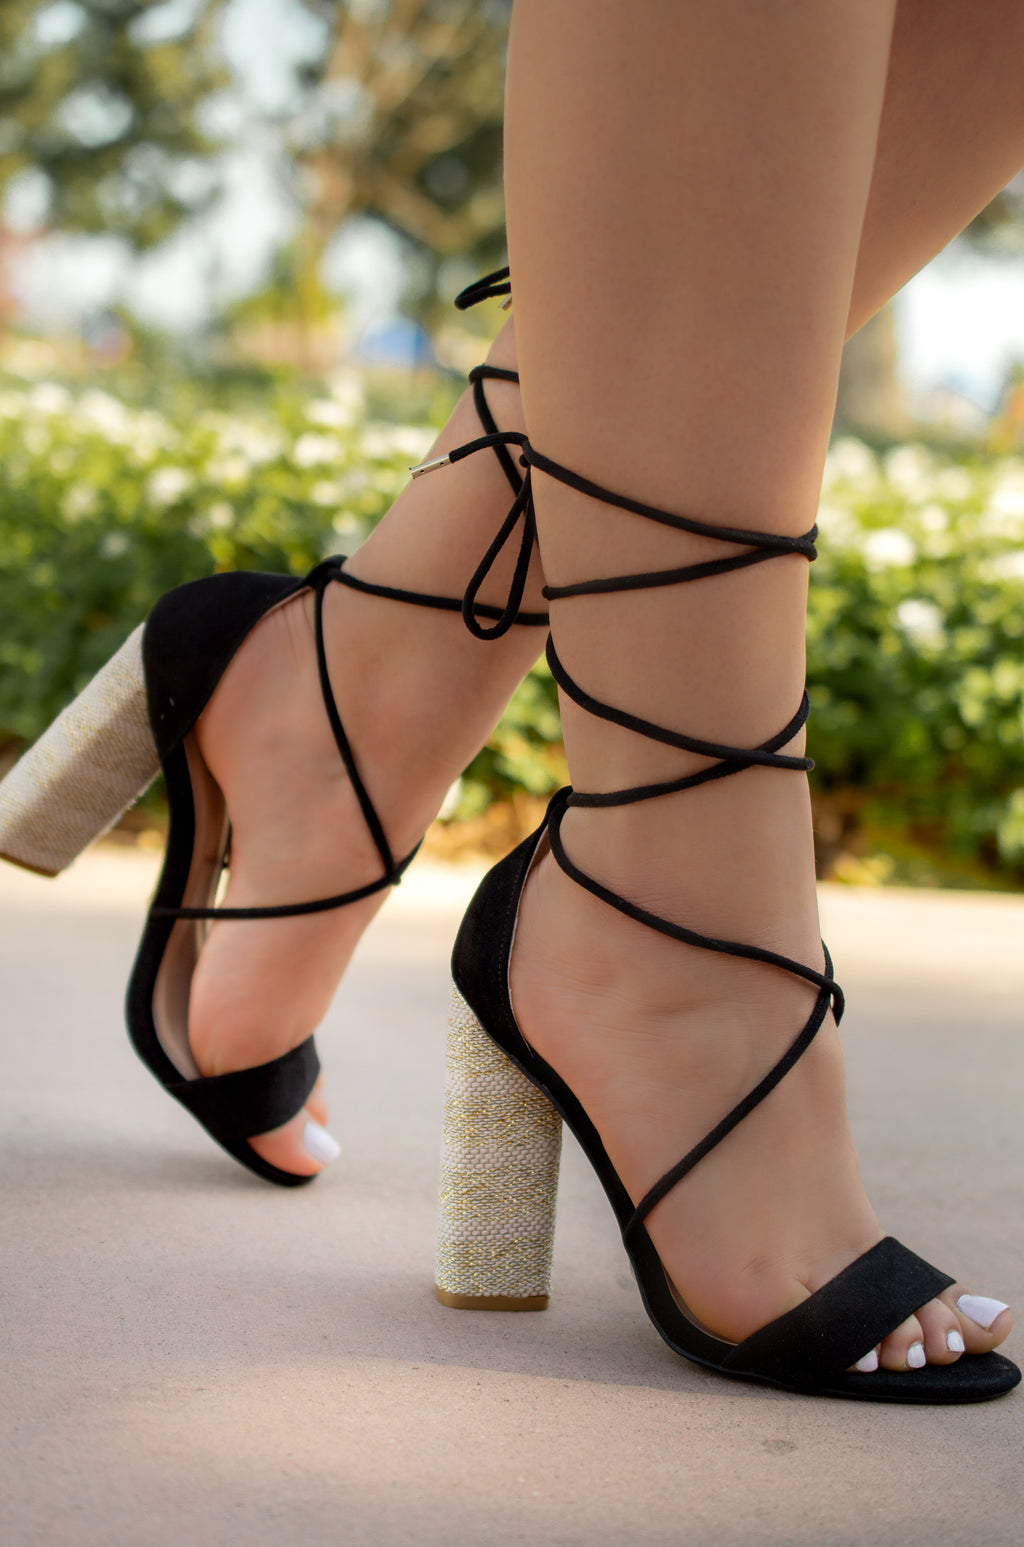 No Strings Attached - Black Lace Up Heels